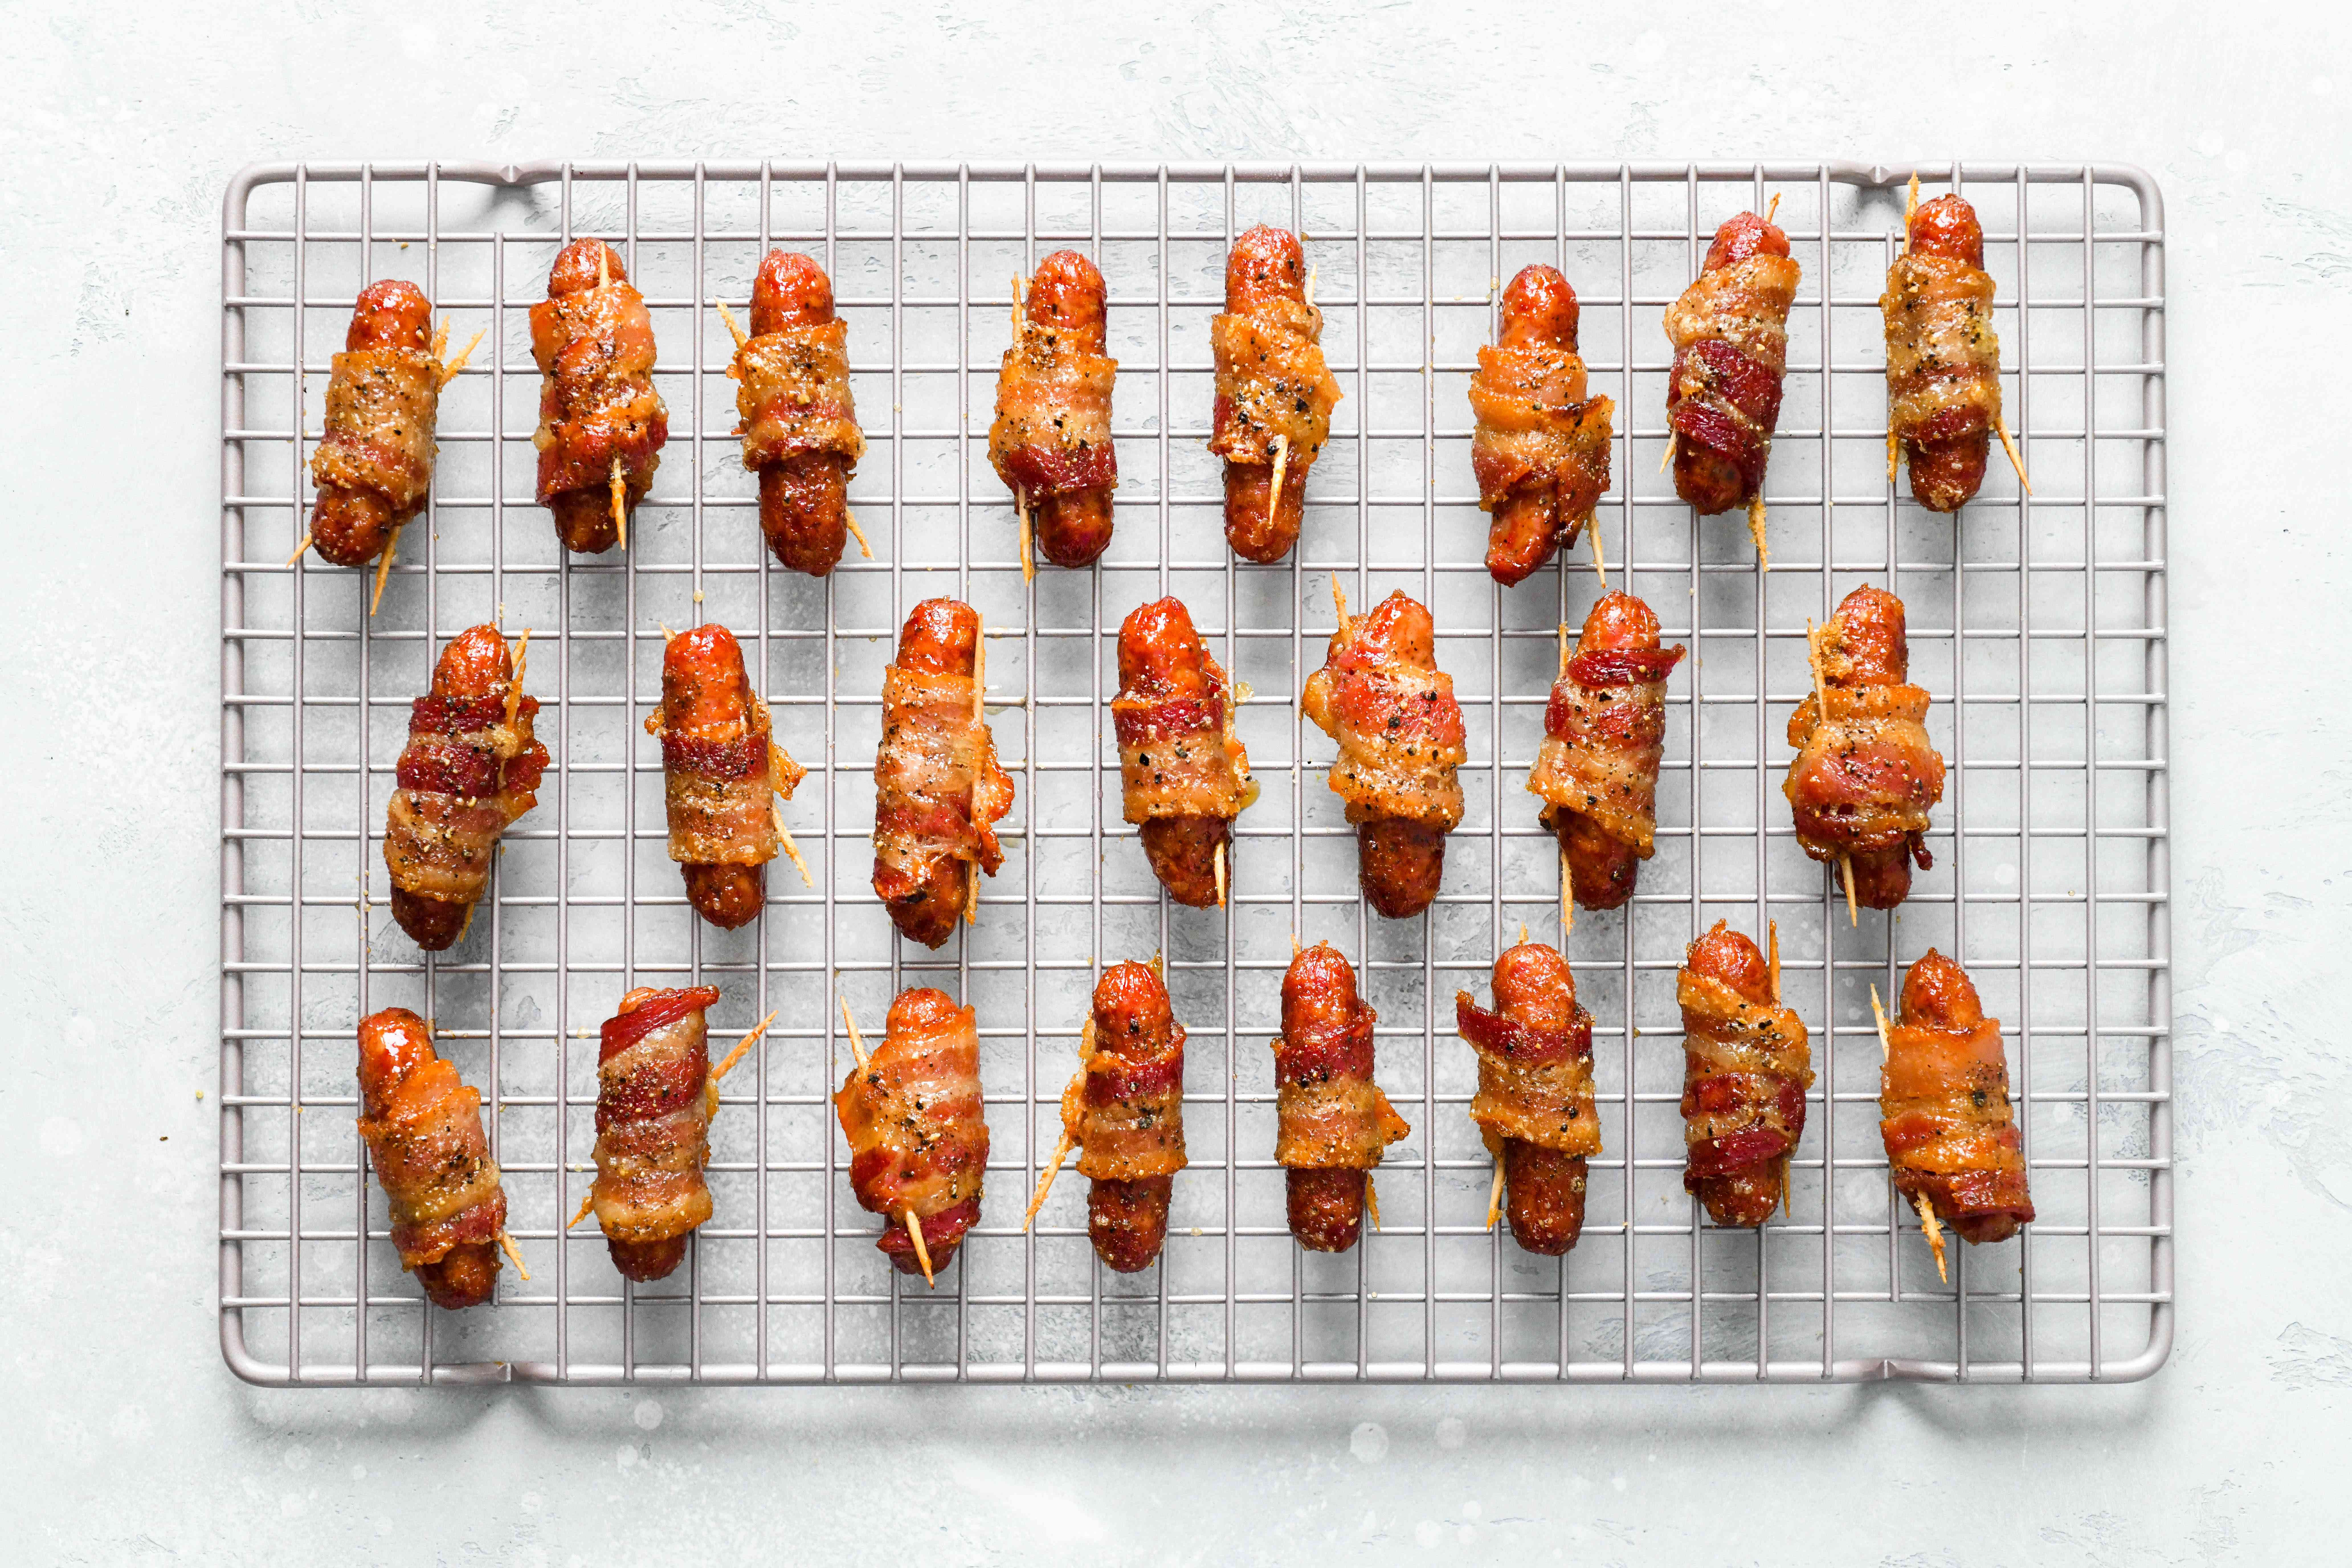 Bacon-wrapped sausages cooling on a wire rack